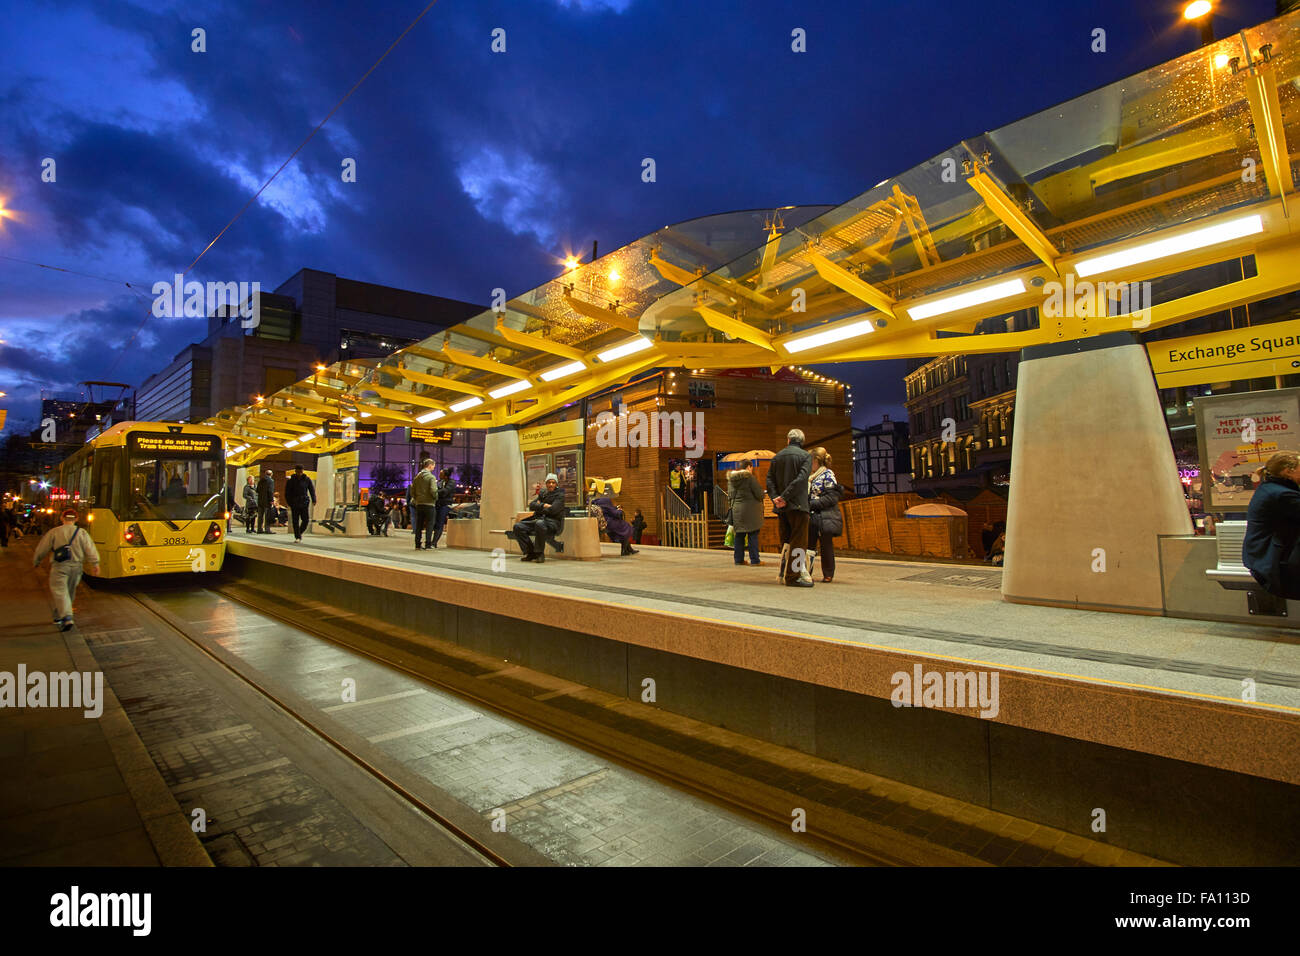 Manchester Metrolink Tram station at Corporation Street, Exchange Square, Manchester, Greater Manchester, England - Stock Image